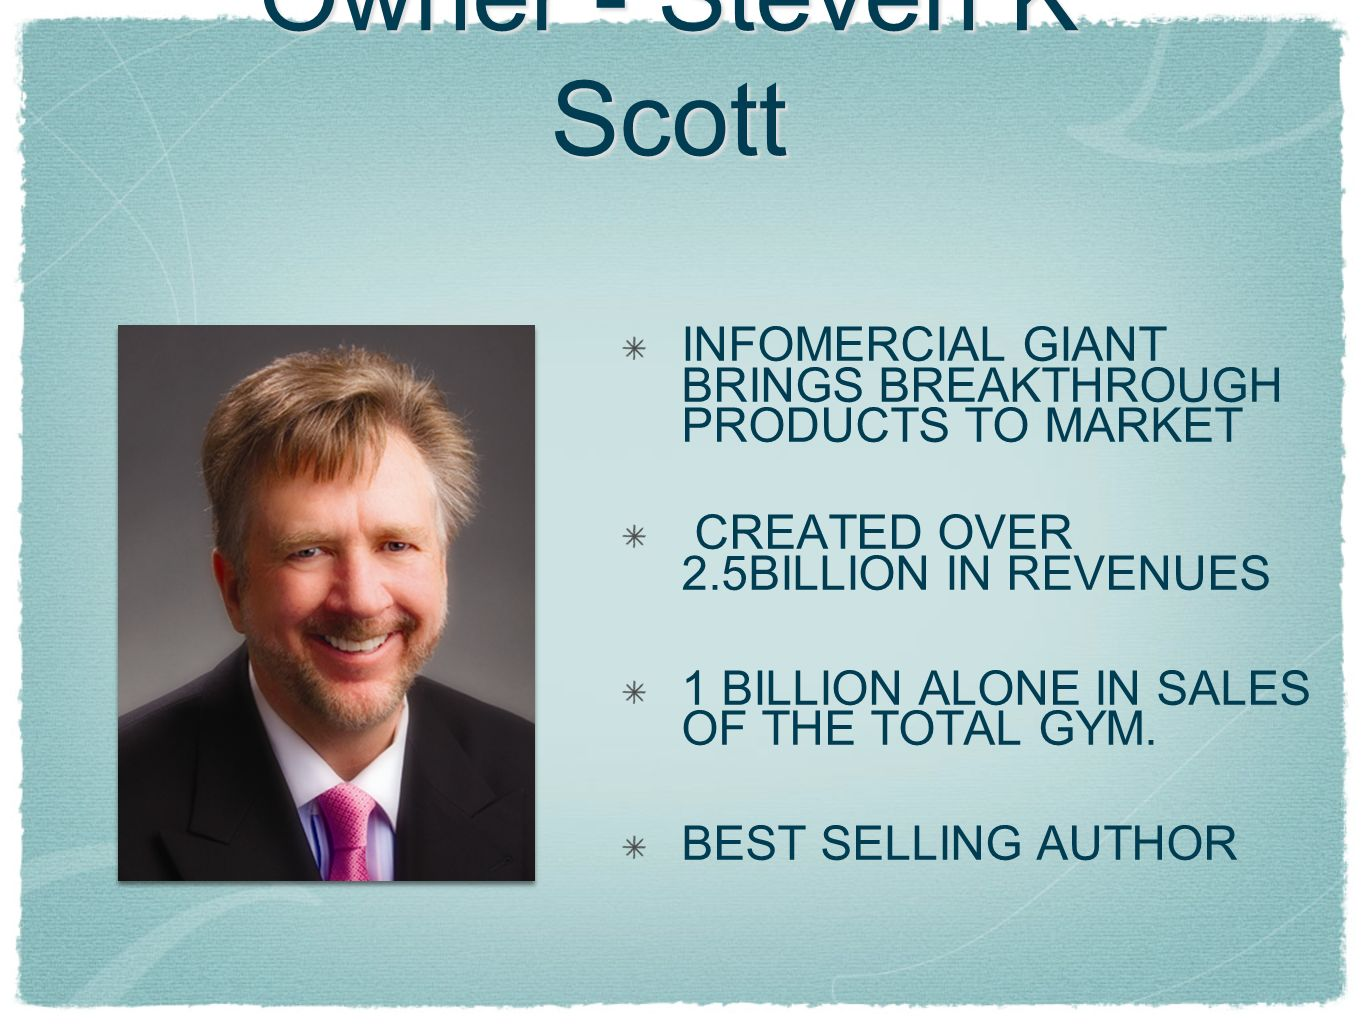 Owner - Steven K Scott INFOMERCIAL GIANT BRINGS BREAKTHROUGH PRODUCTS TO MARKET. CREATED OVER 2.5BILLION IN REVENUES.